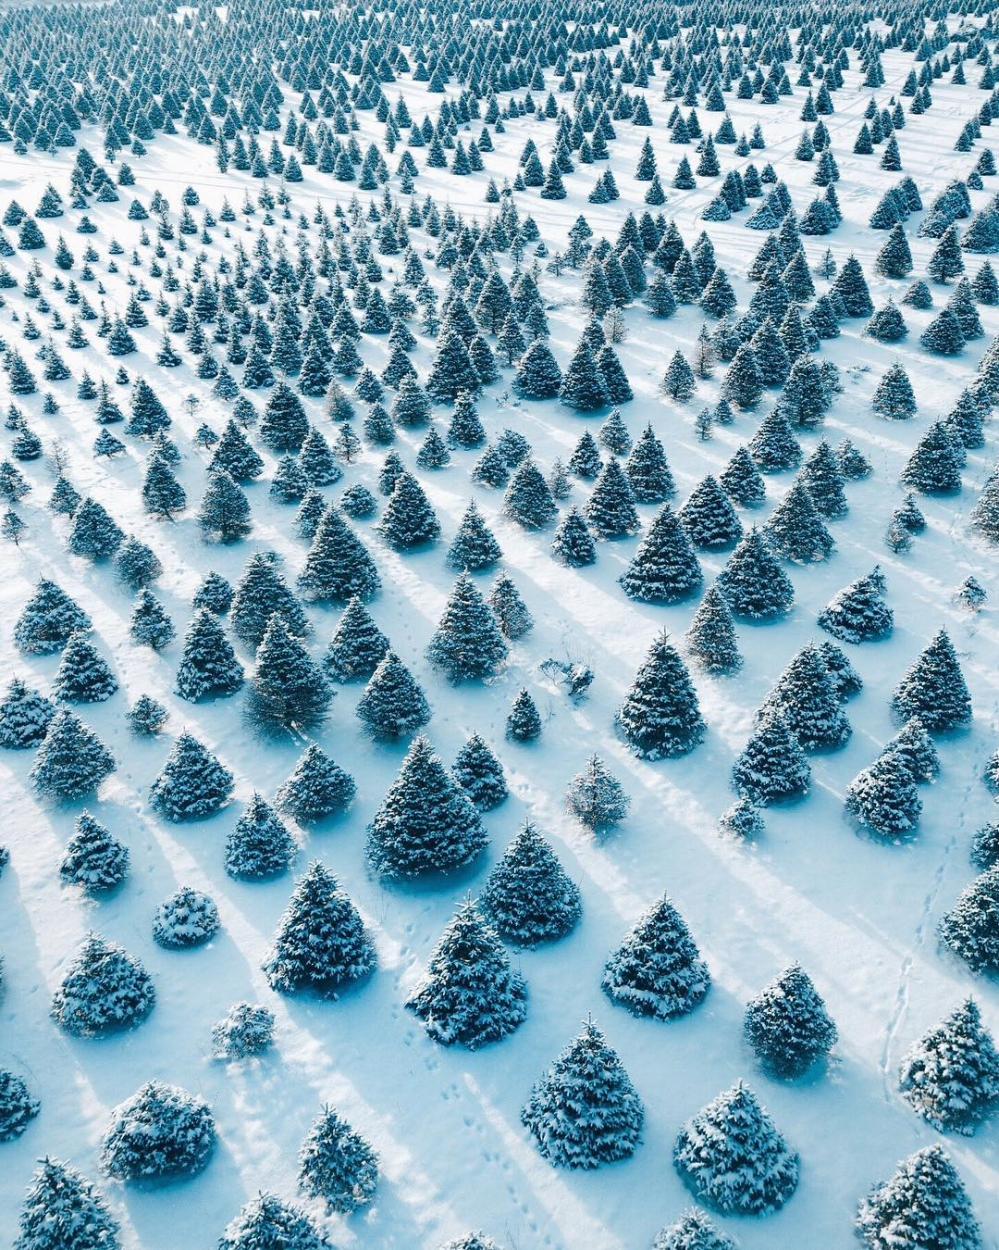 """Merry Christmas! Check out this great drone capture above a Christmas tree farm in Whitehouse, Ohio. Of the more than 160 million Christmas trees growing in the United States in 2015, roughly 2 million were in Ohio. The biggest grower in the U.S. is Oregon, which had upwards of 50 million trees growing in 2015.  41°32'32.3""""N, 83°48'51.6""""W  Source imagery: Eric Ward (@littlecoal)"""